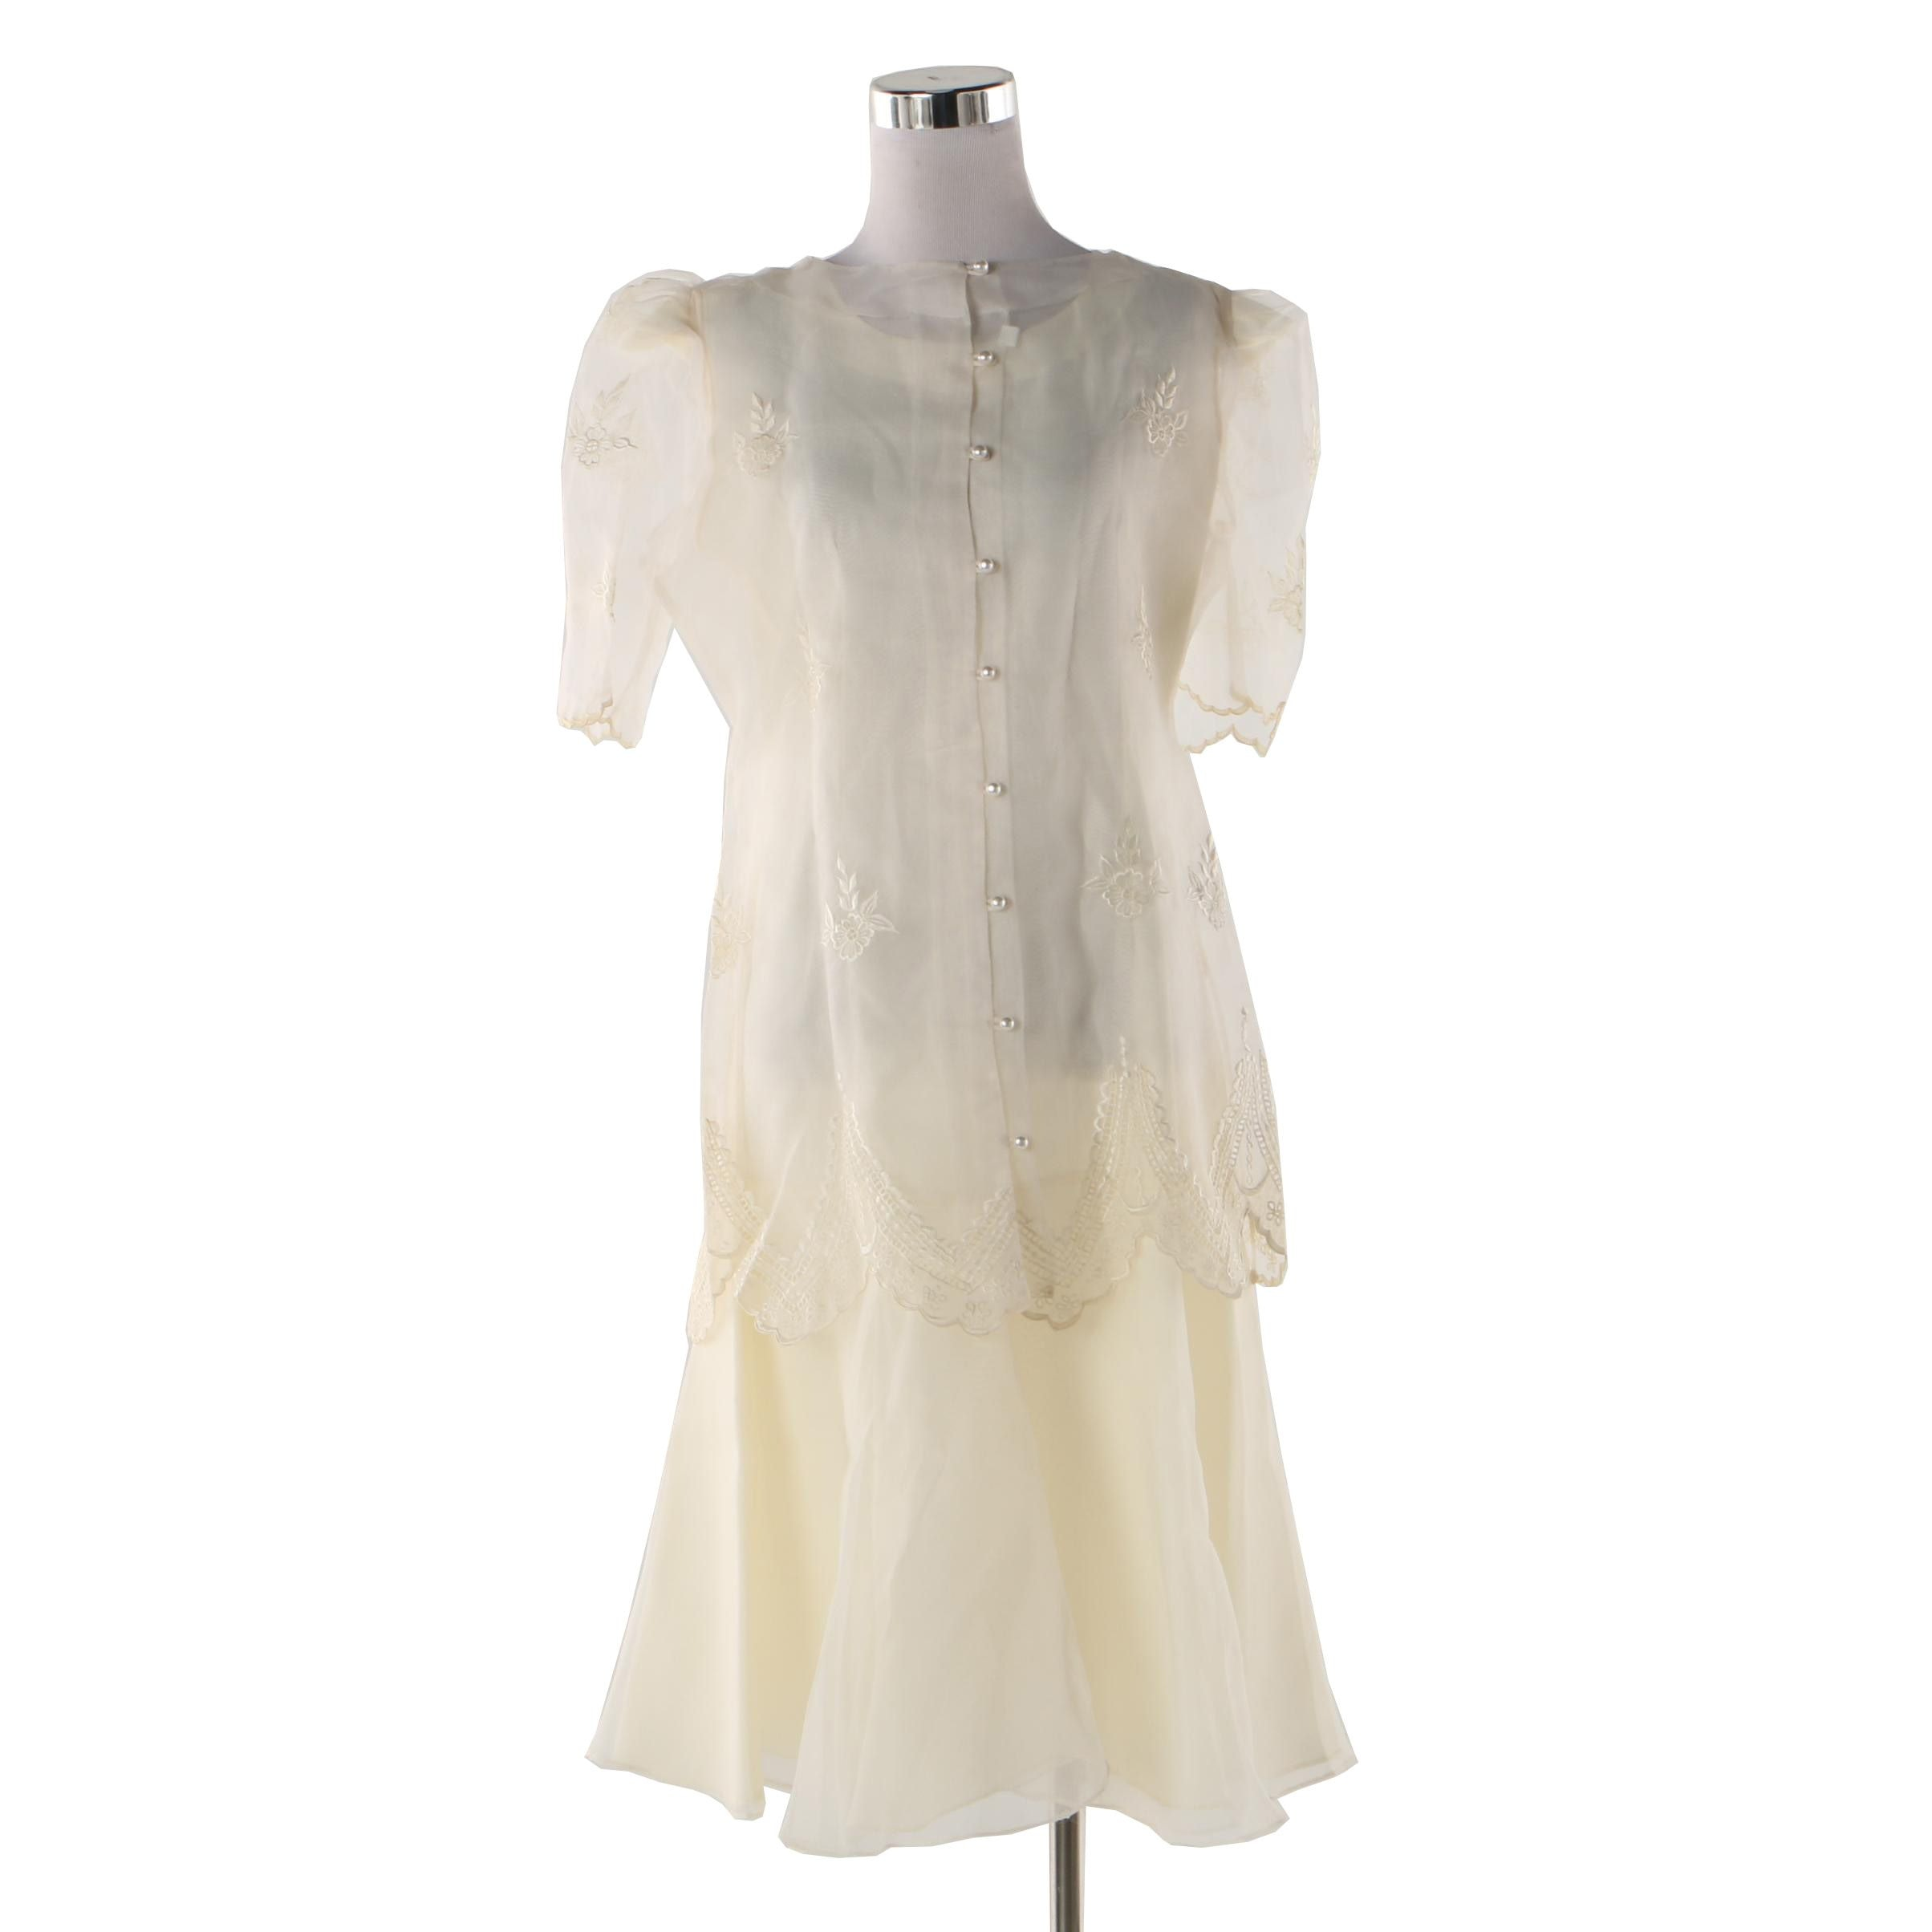 Ivory Overlay Sheer Embroidered Dress